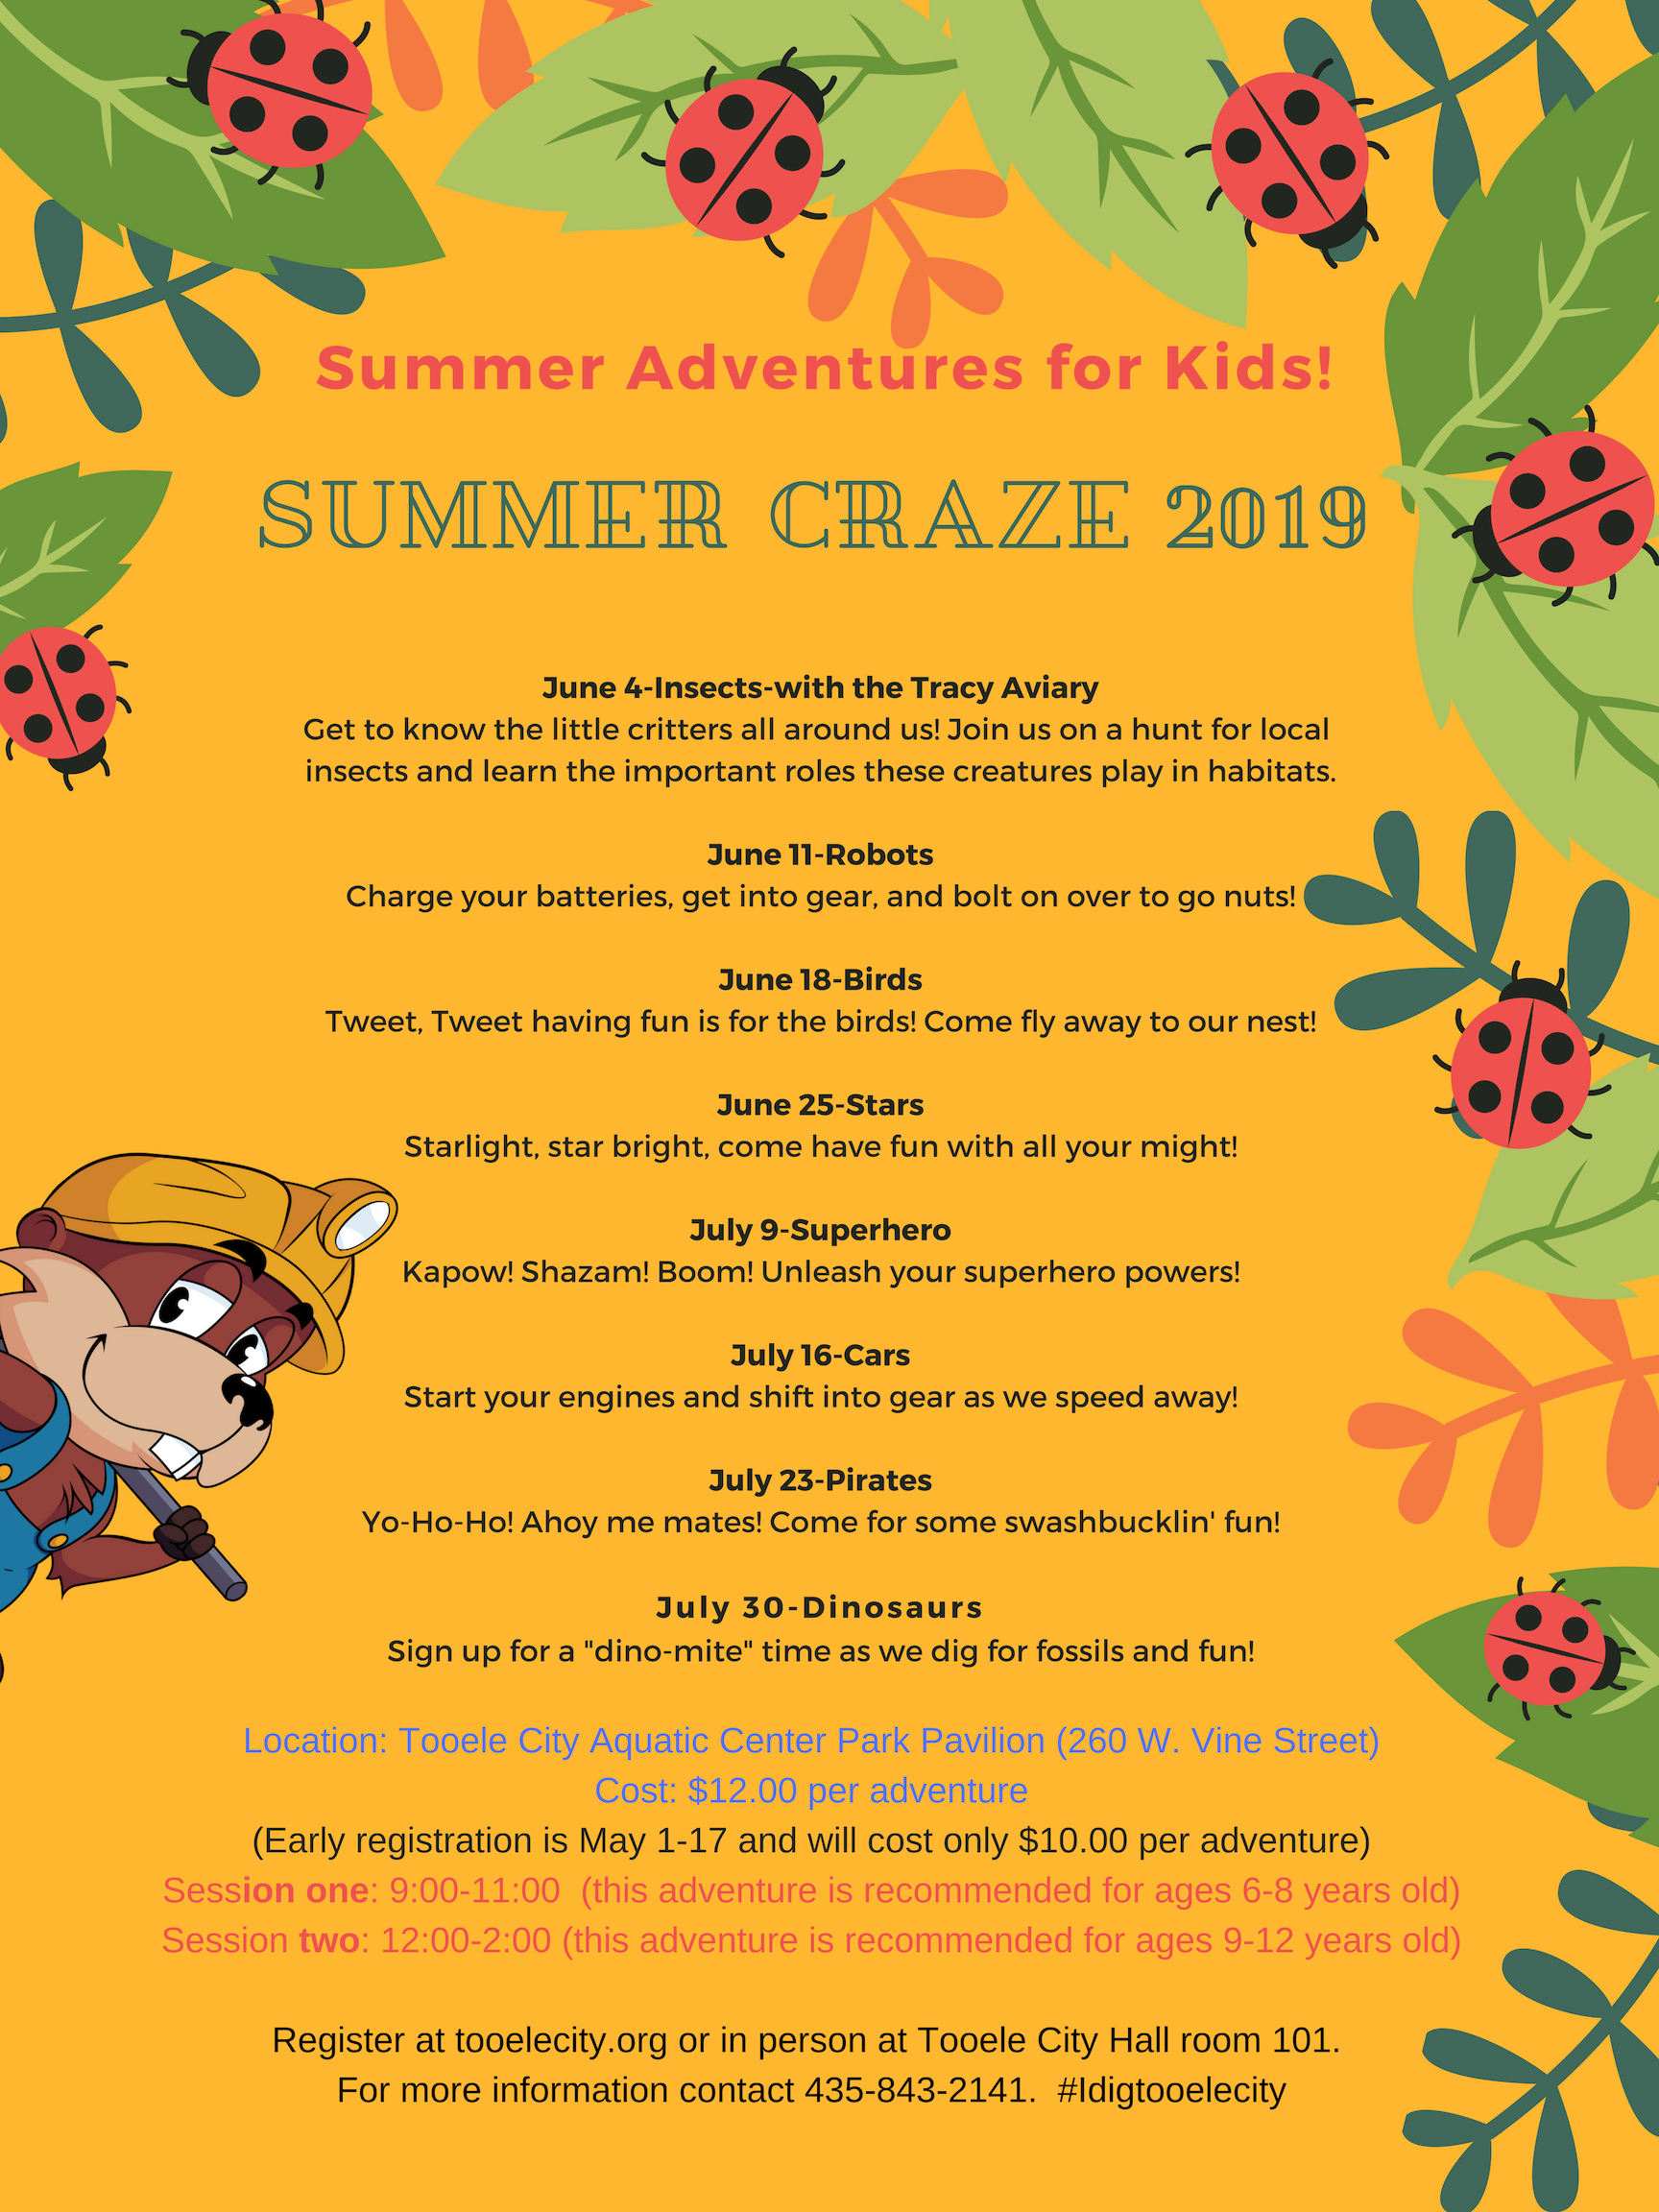 Summer Craze Adventures for Kids! 2019